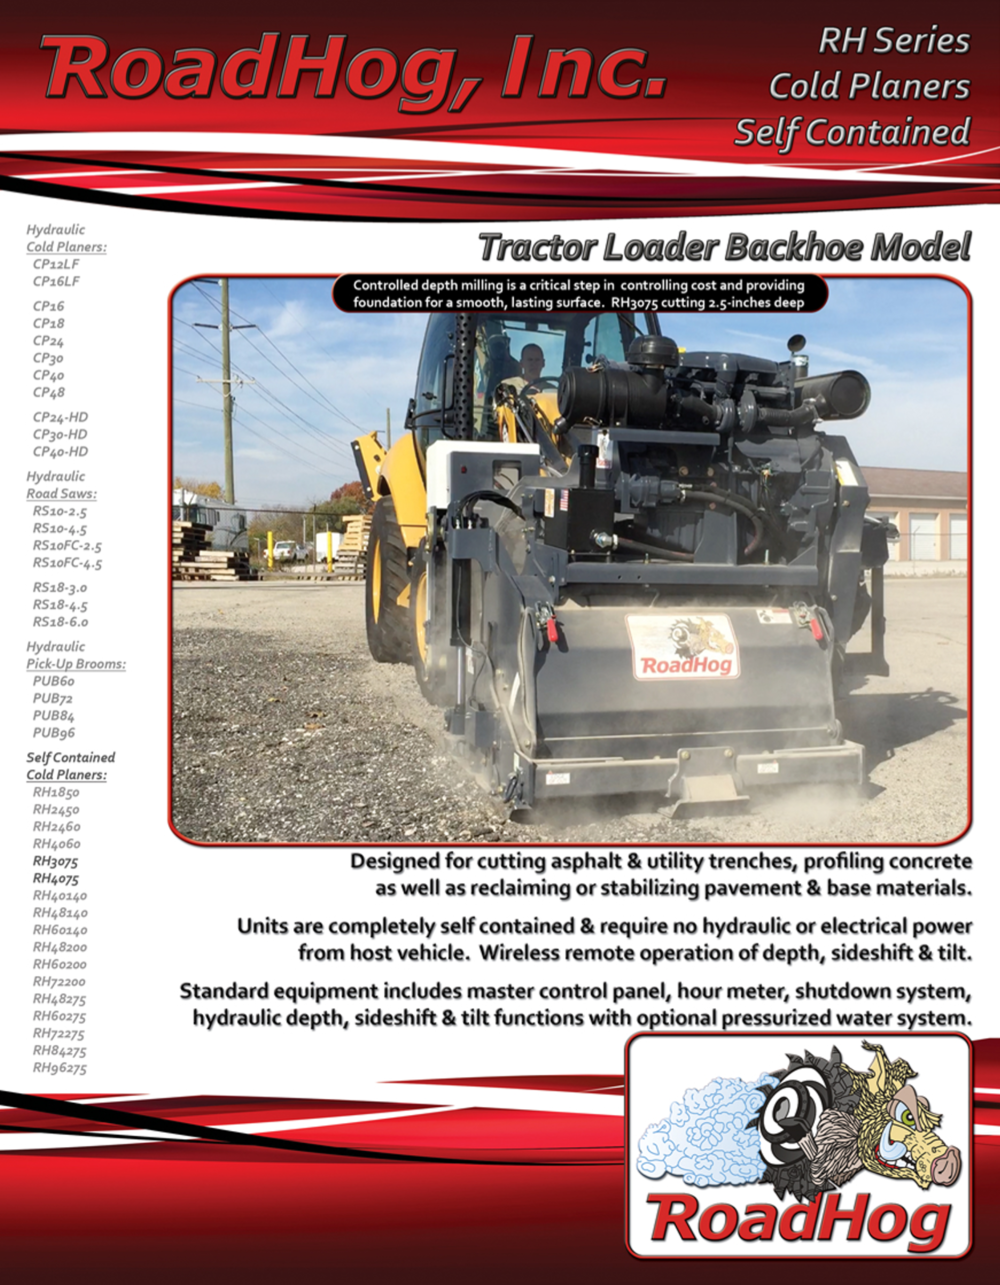 RH TLB Self Contained Cold Planer Brochure